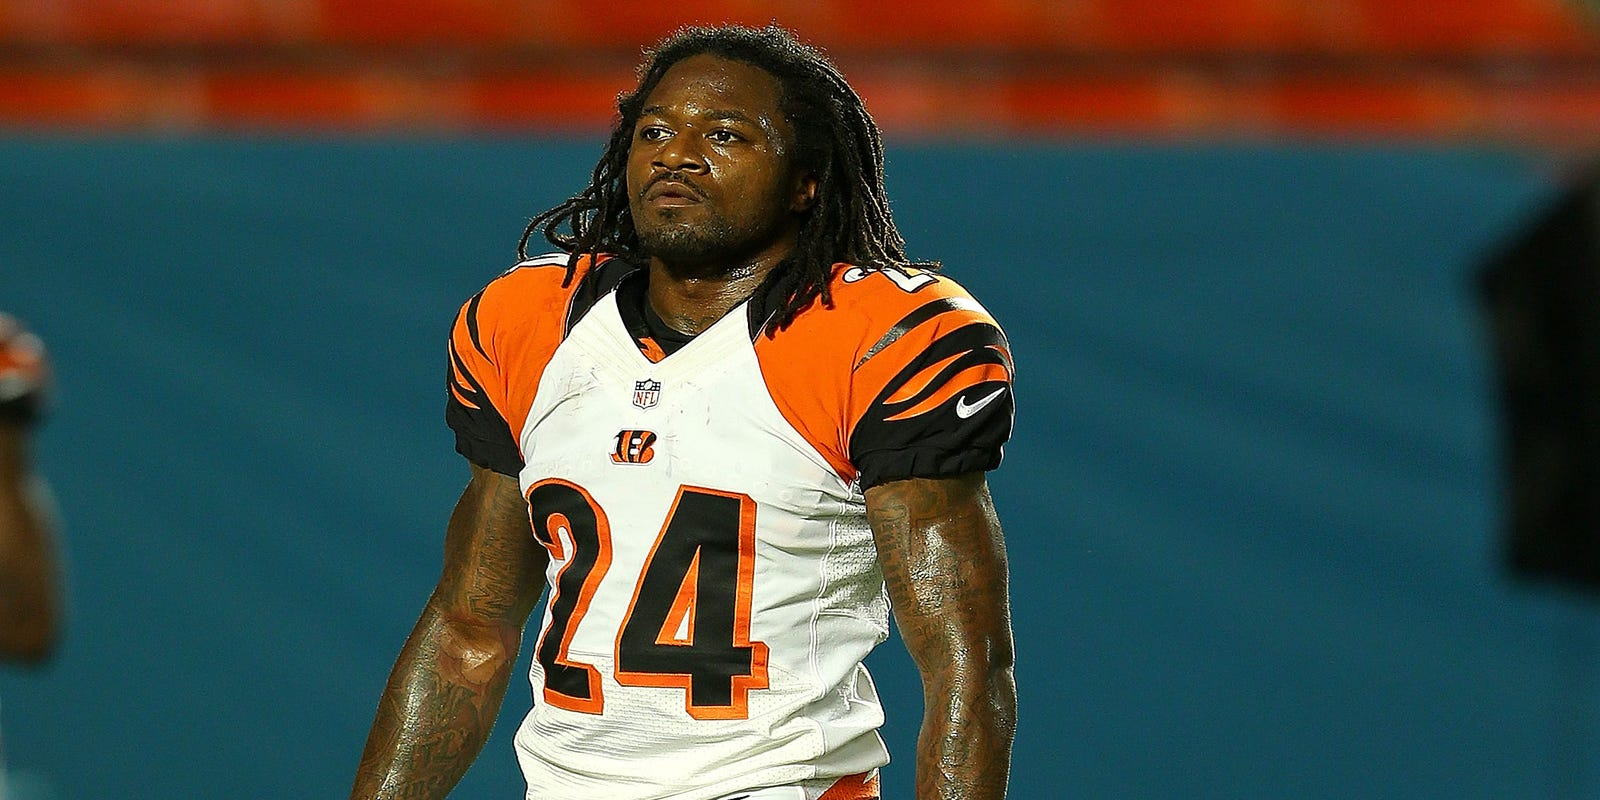 Pacman Jones eager for first game against Titans